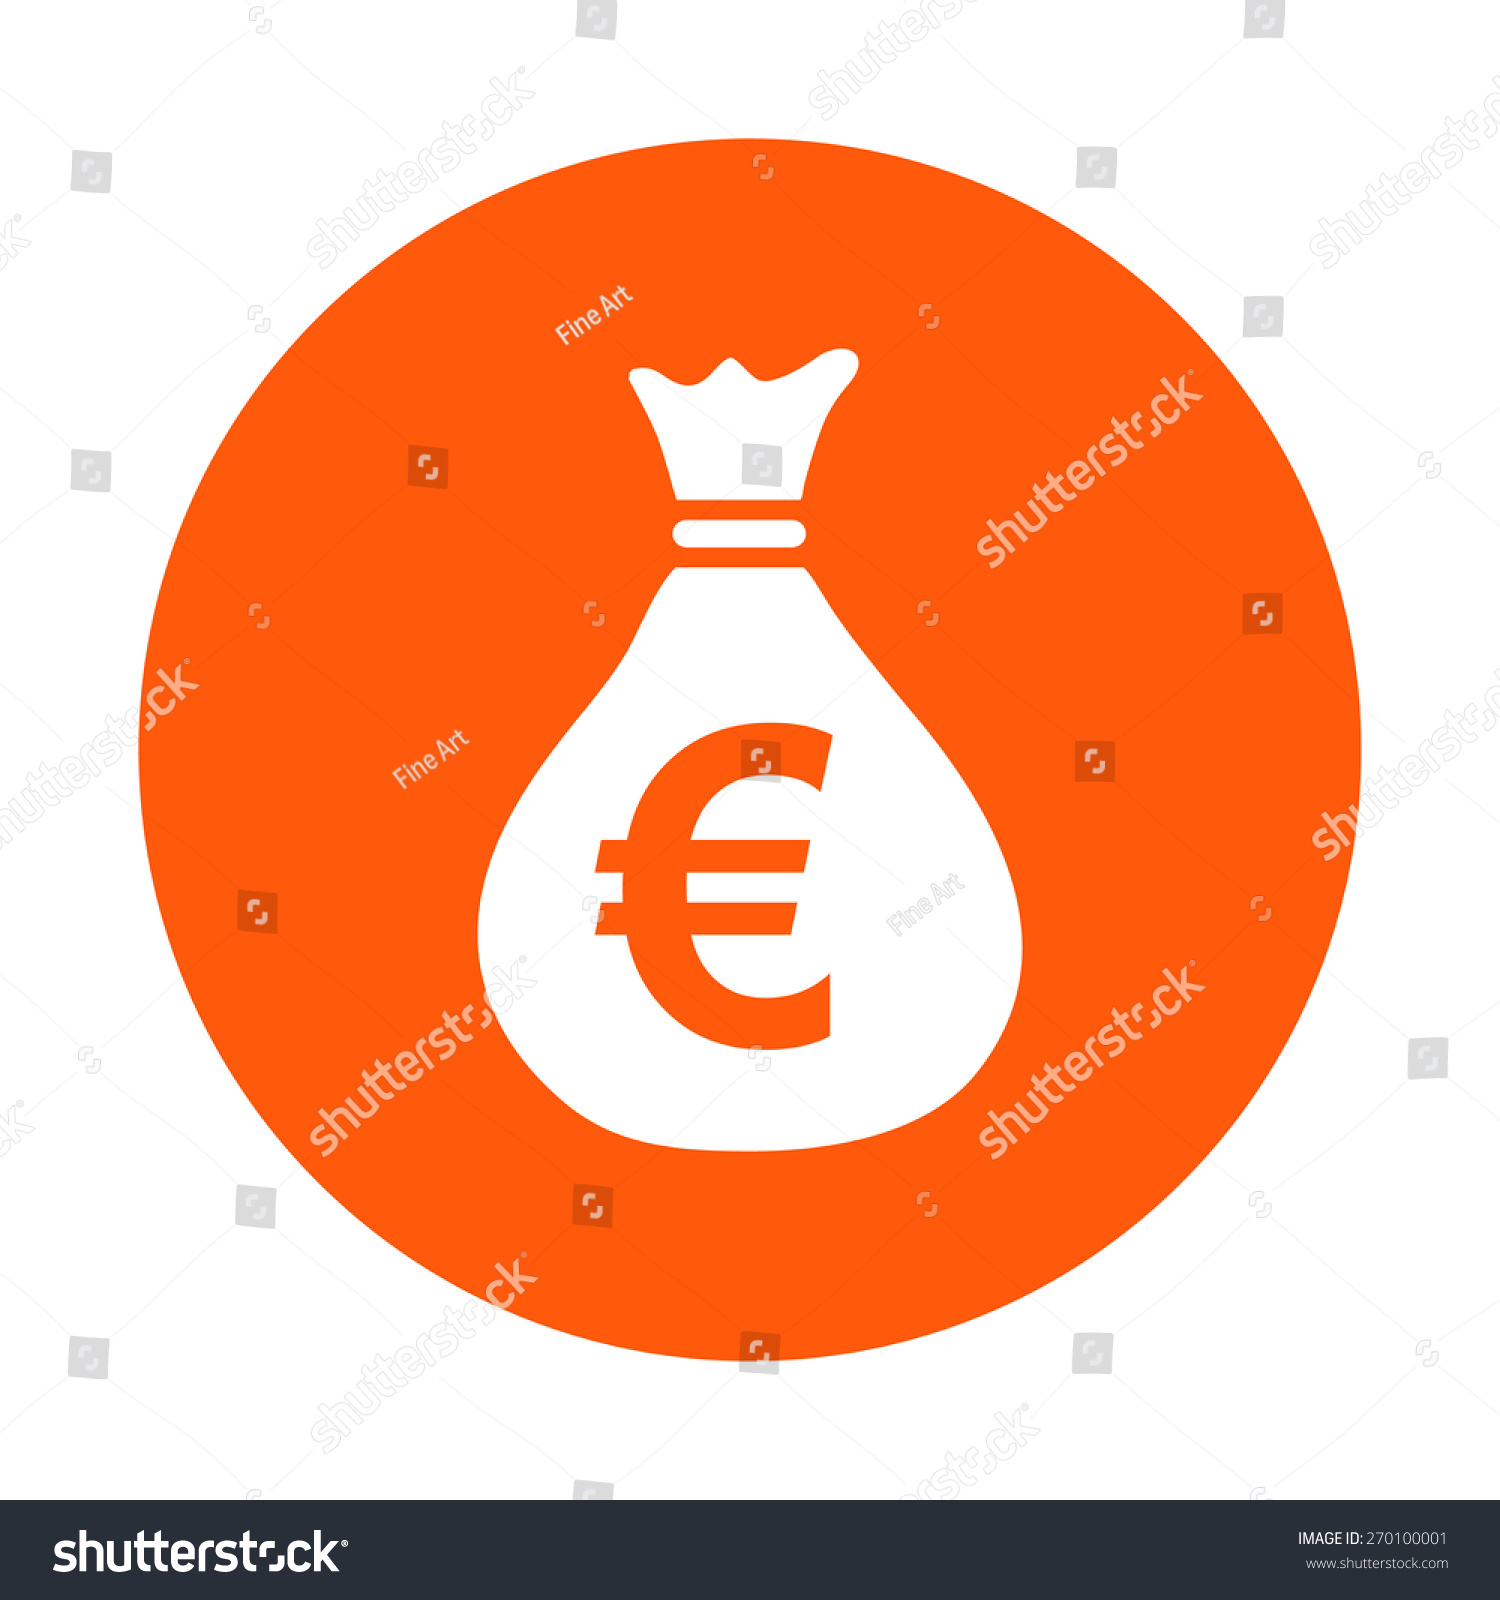 Money bag icon euro eur currency stock vector 270100001 shutterstock euro eur currency symbol flat design style eps 10 biocorpaavc